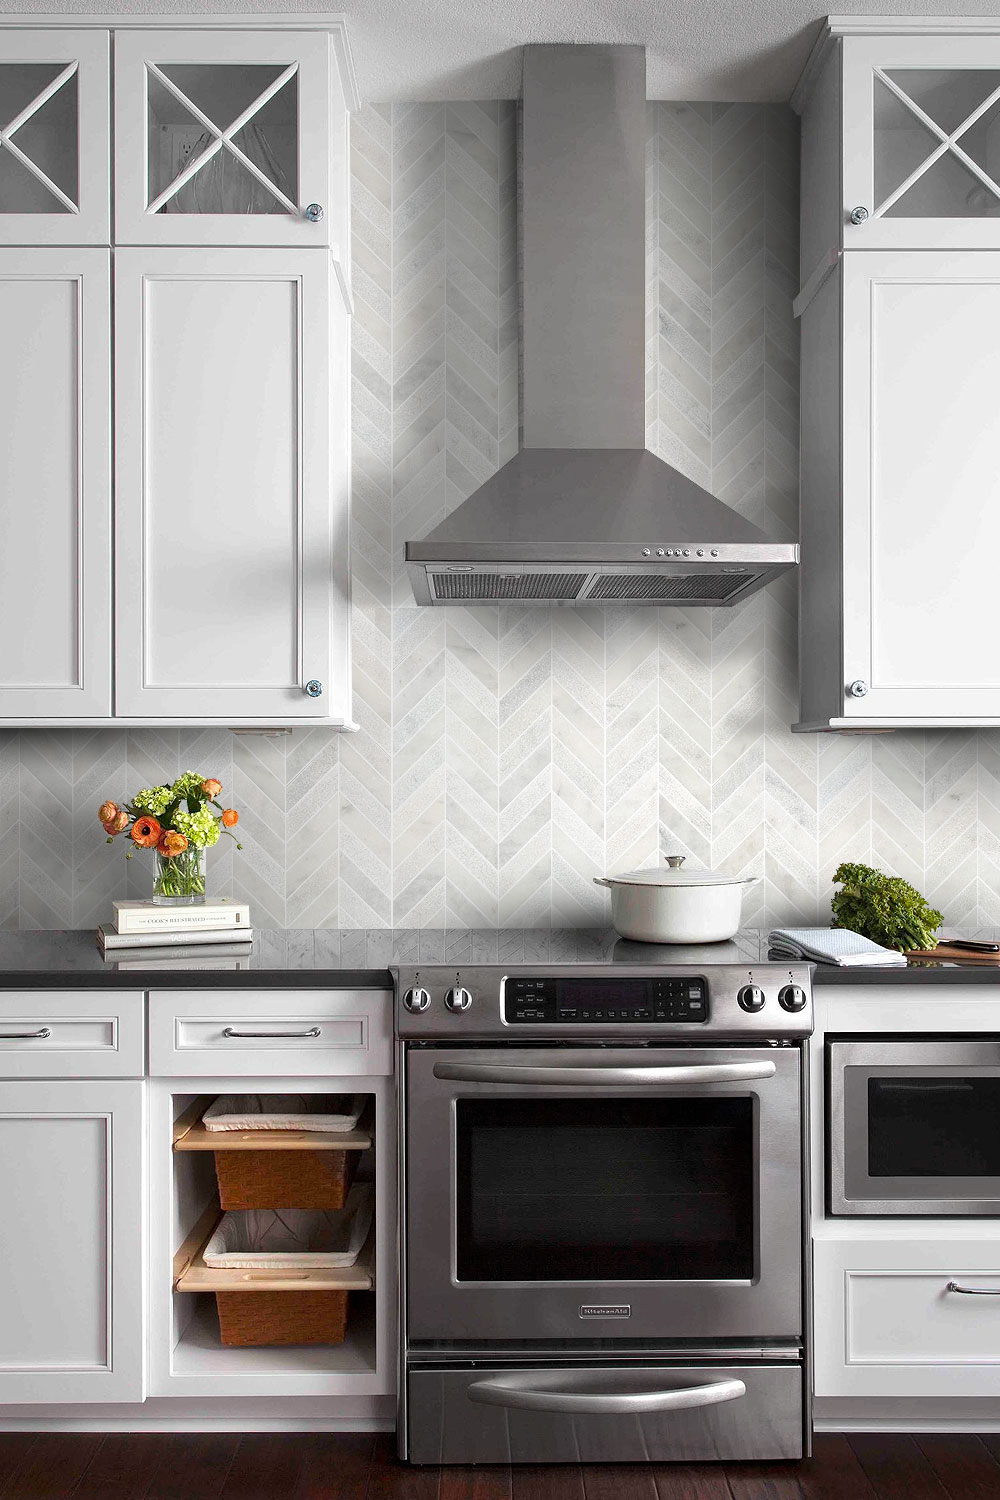 Farmhouse Transitional Kitchen Black Granite Countertop Chevron Backspash Tile